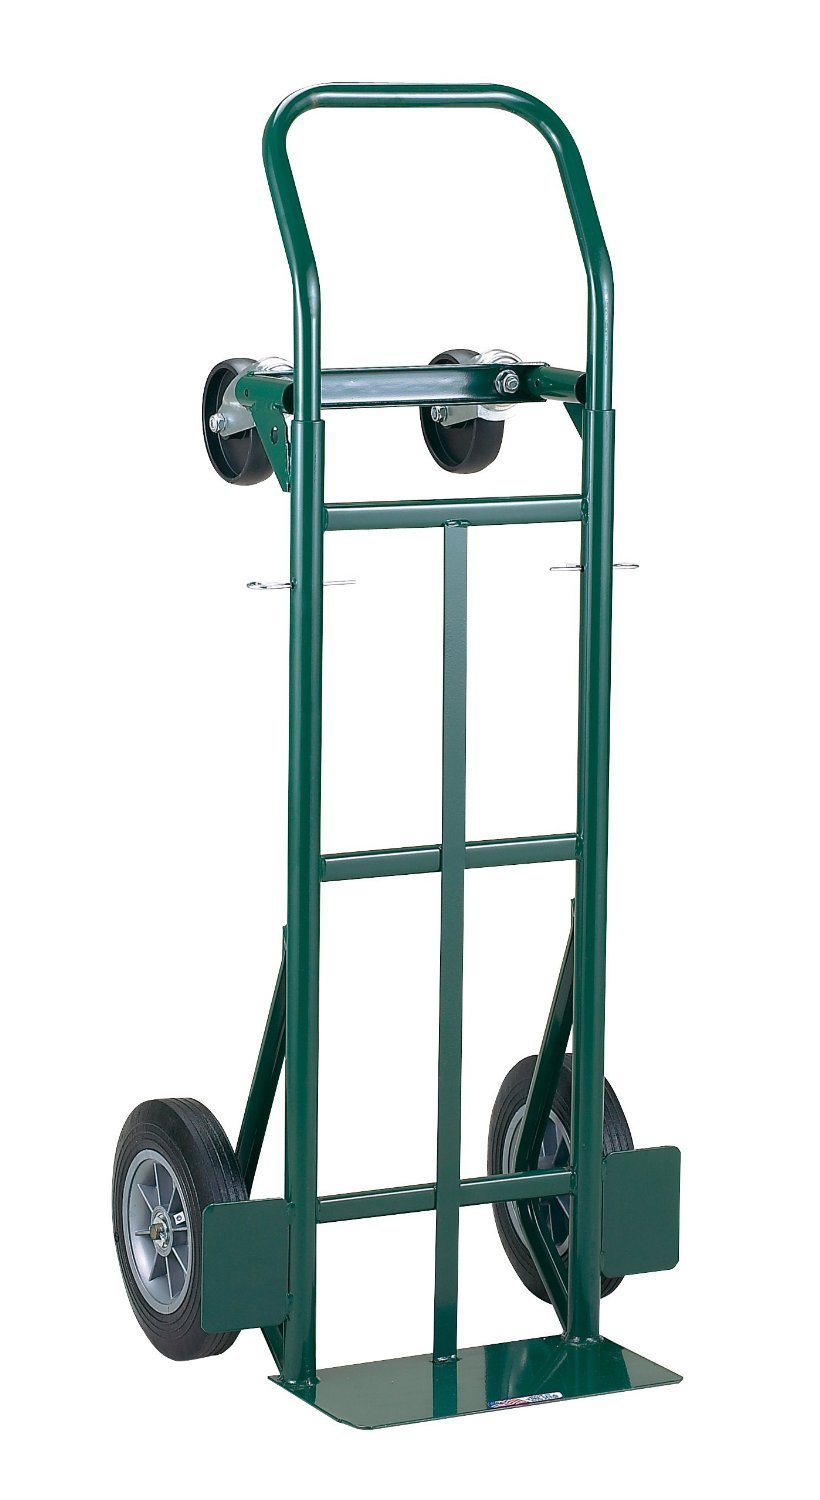 Harper Trucks 700 lb Capacity Super-Steel Convertible Hand Truck, Dual Purpose 2 Wheel Dolly and 4 Wheel Cart with 10'' Flat-Free Solid Rubber Wheels